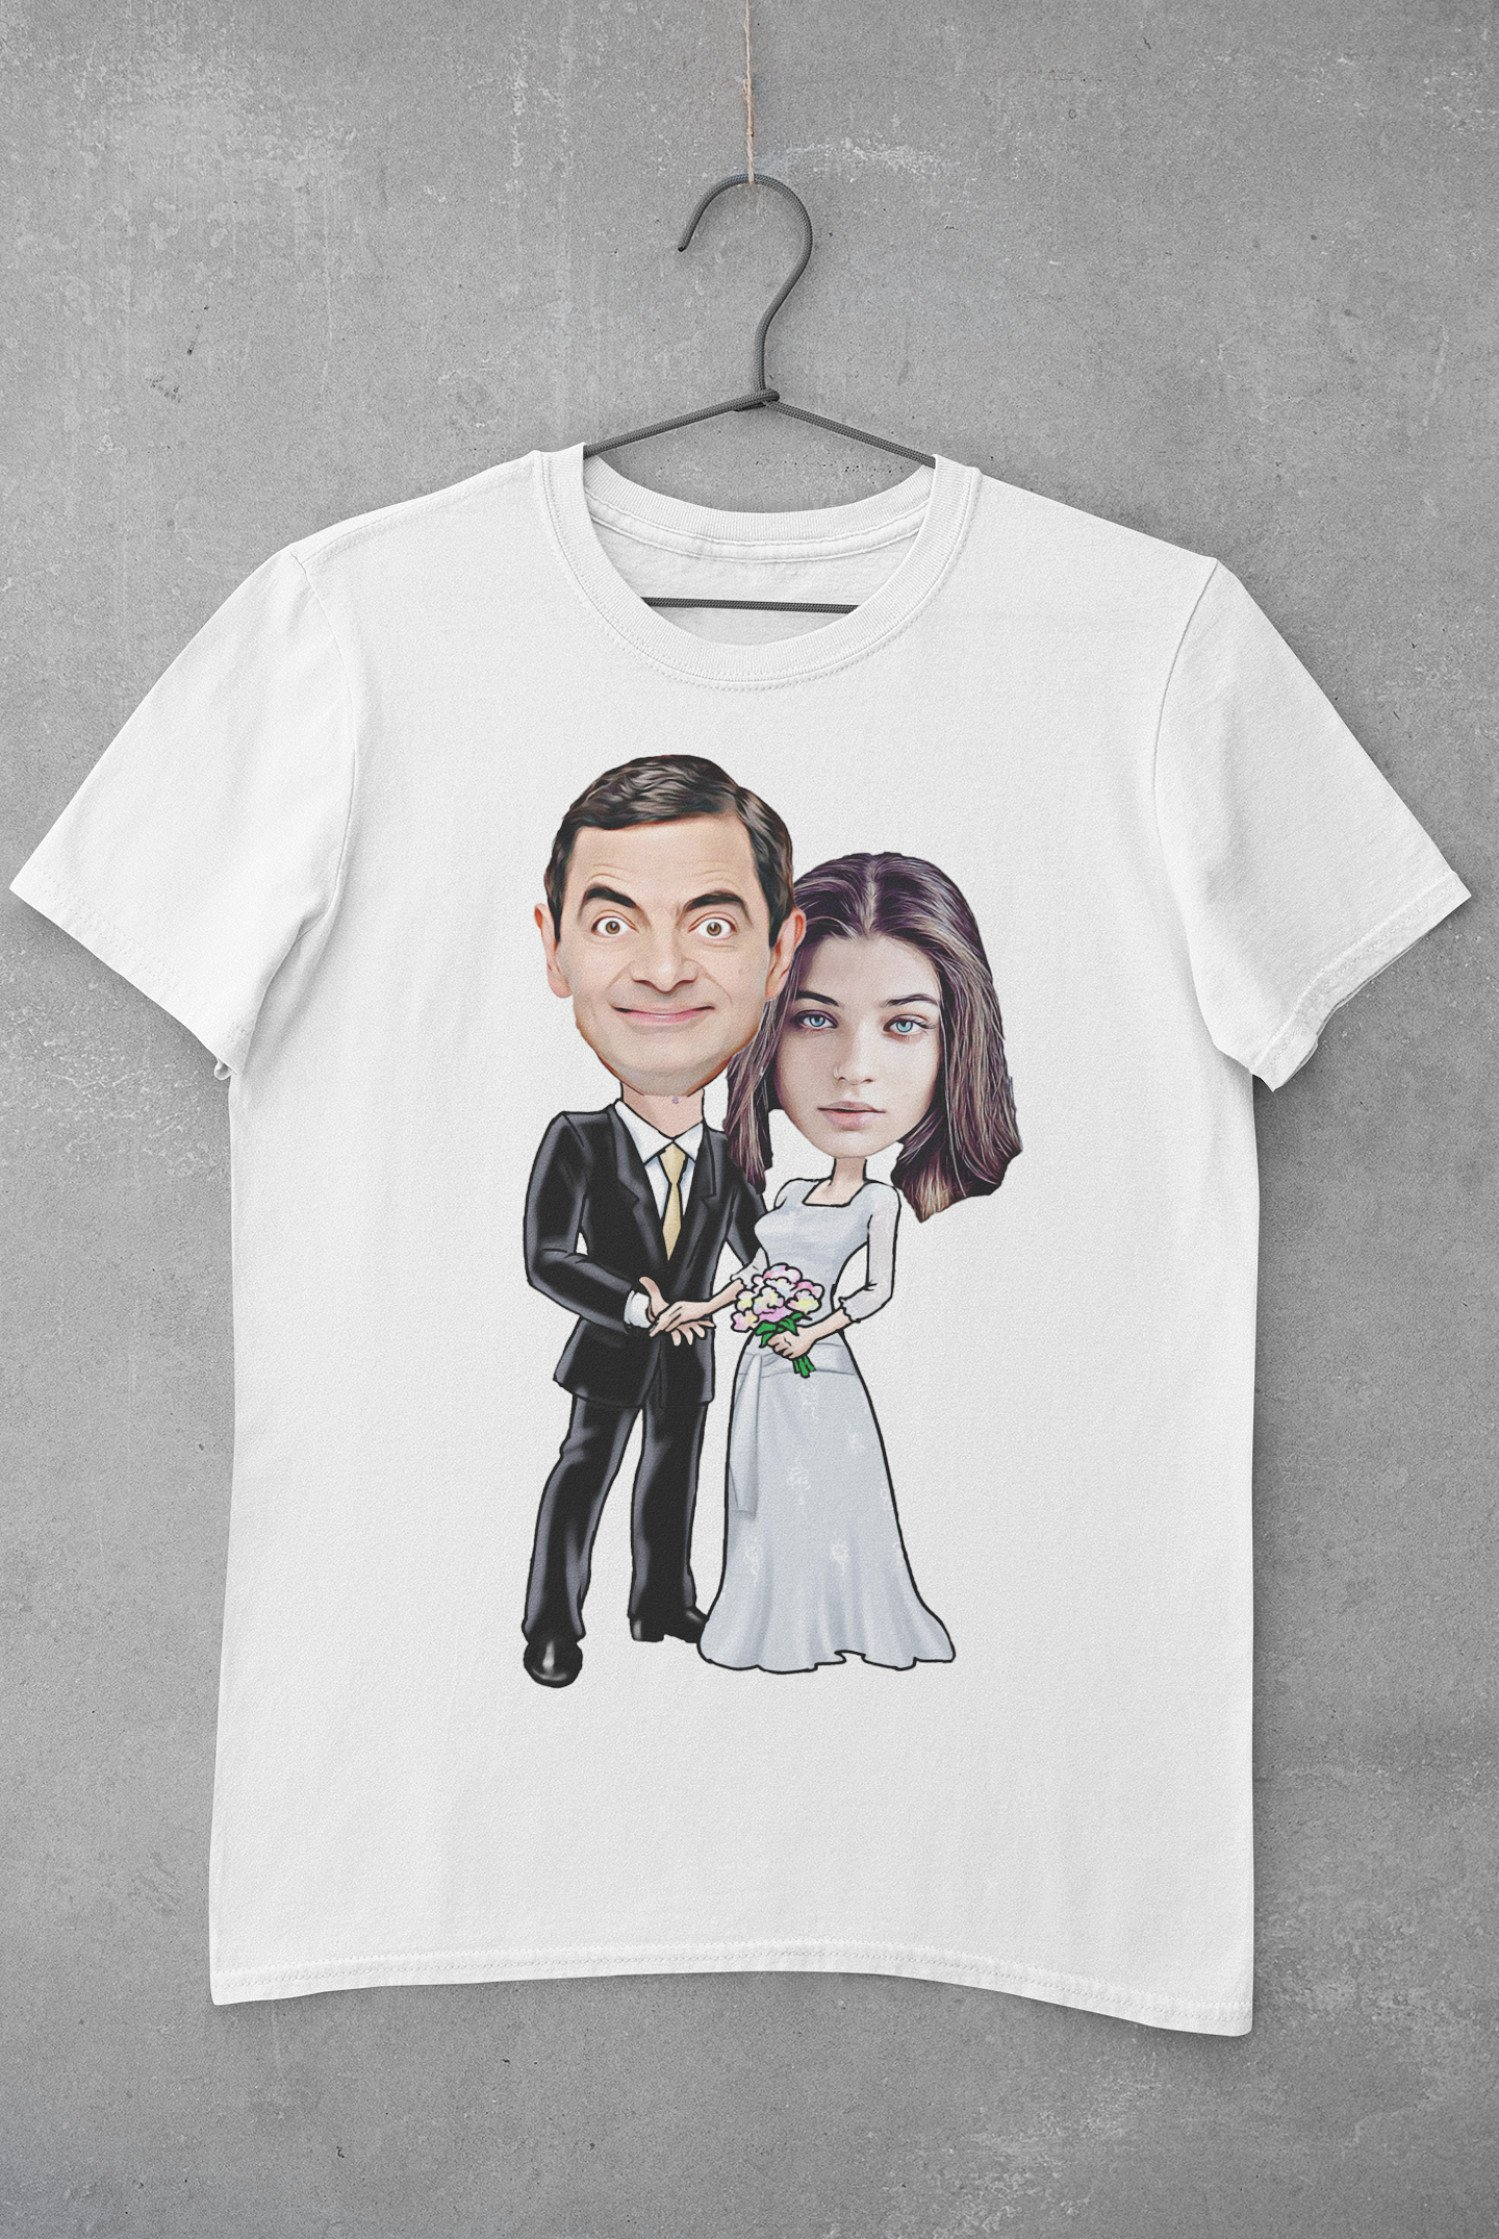 Wedding | Characters Caricature Personalised T-shirt | IBrand